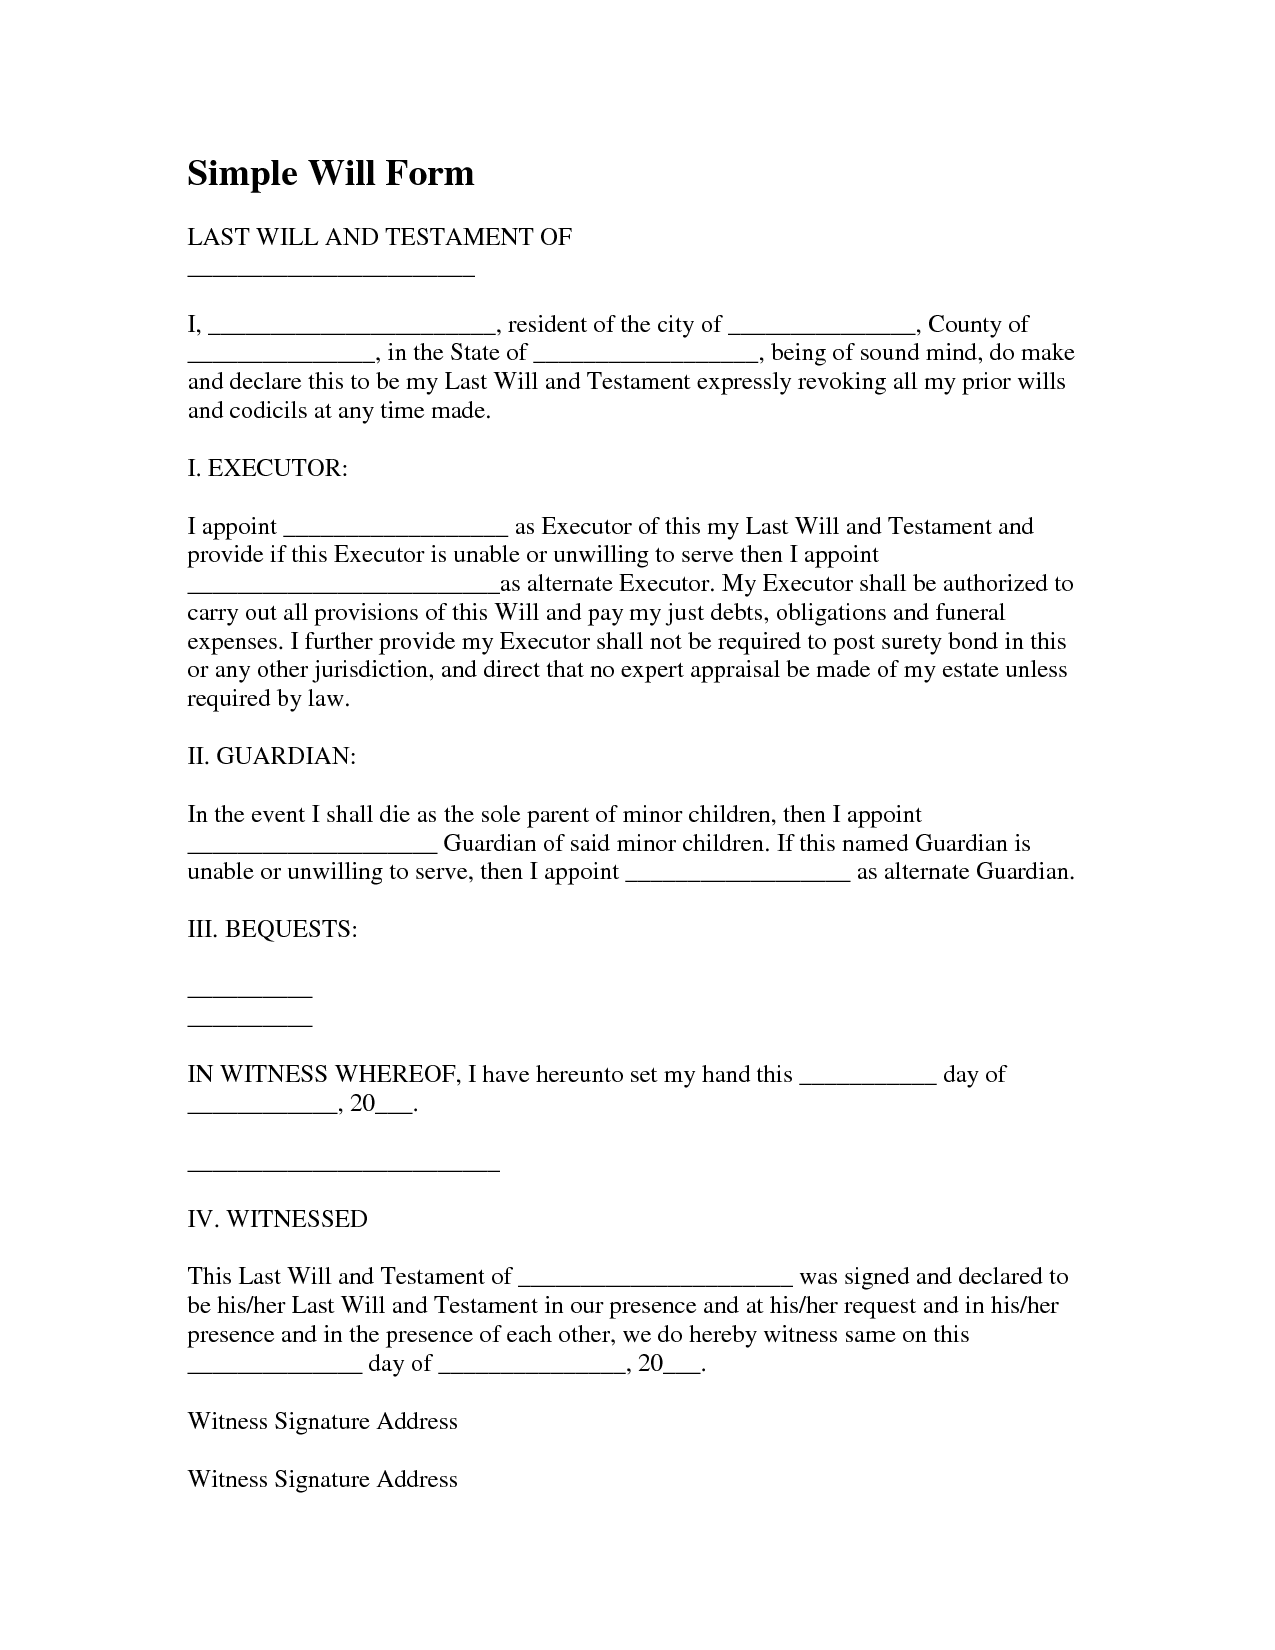 Last Will And Testament Invitation Templates last will and – Will Form